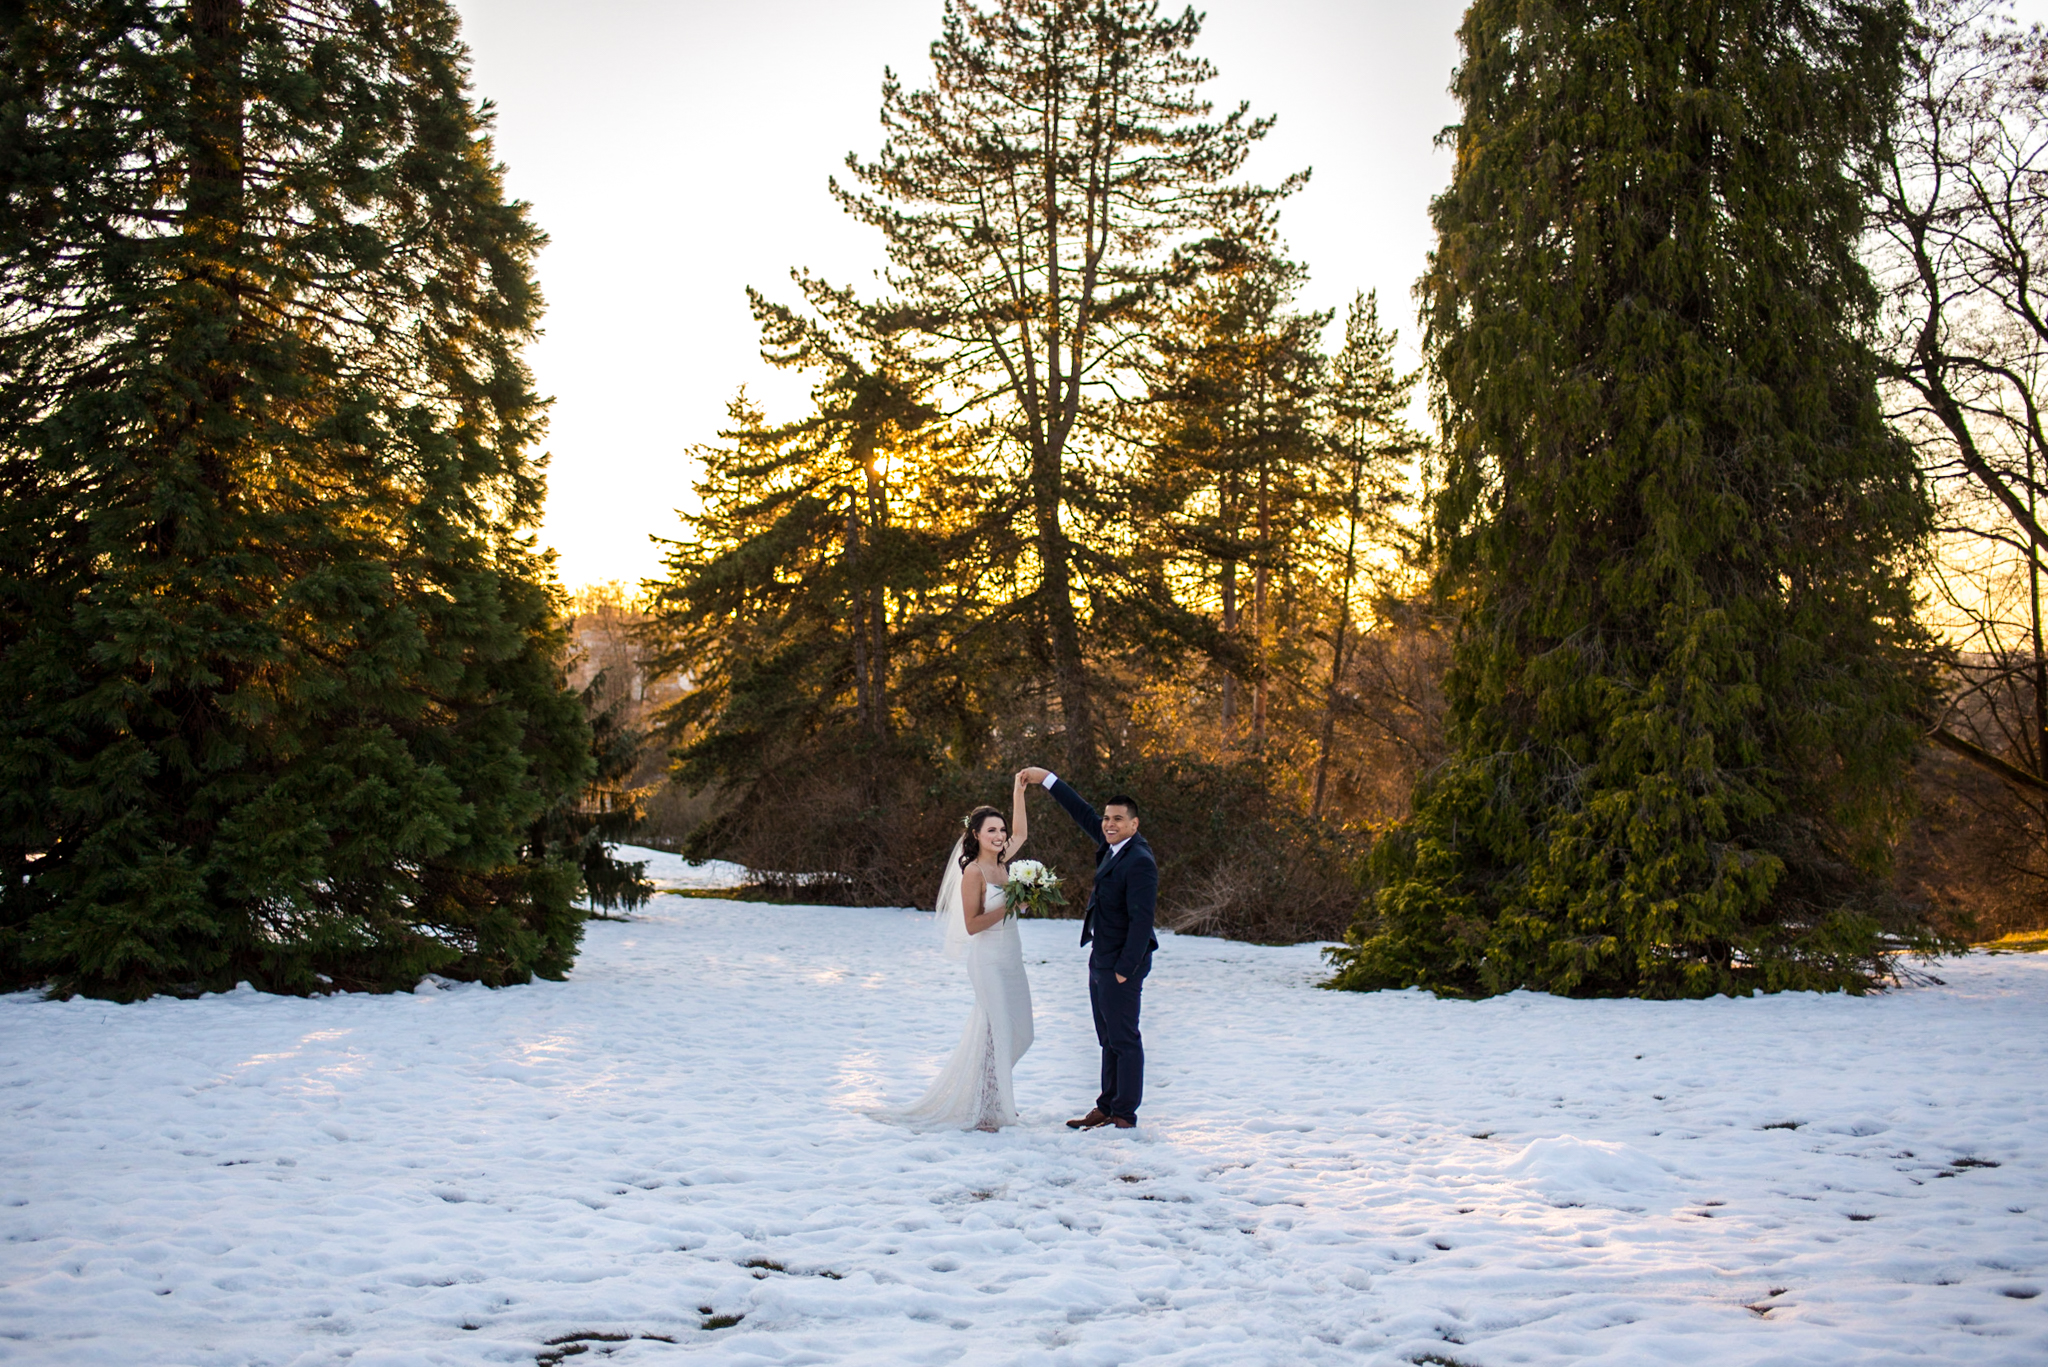 Queen Elizabeth Park Wedding Photographer-37.jpg